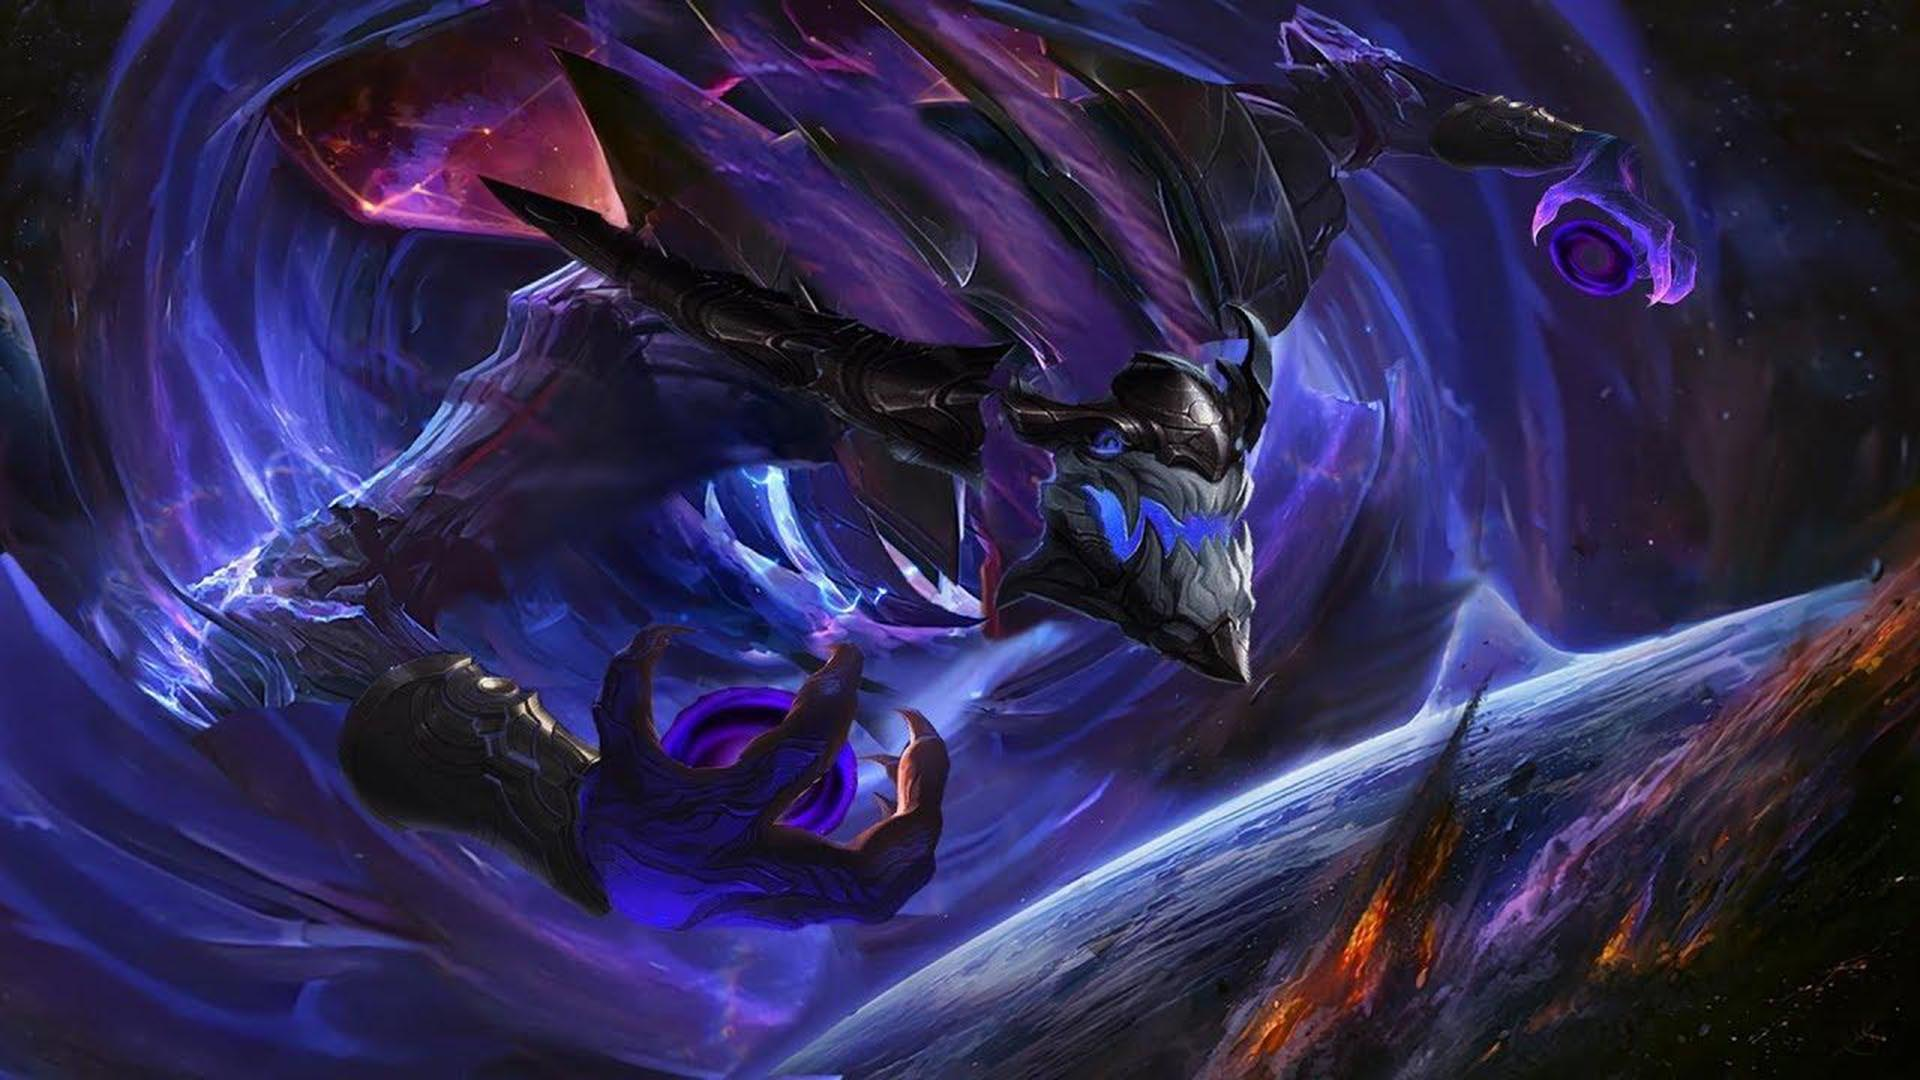 nocturne skins 2018 in game - HD1920×1080